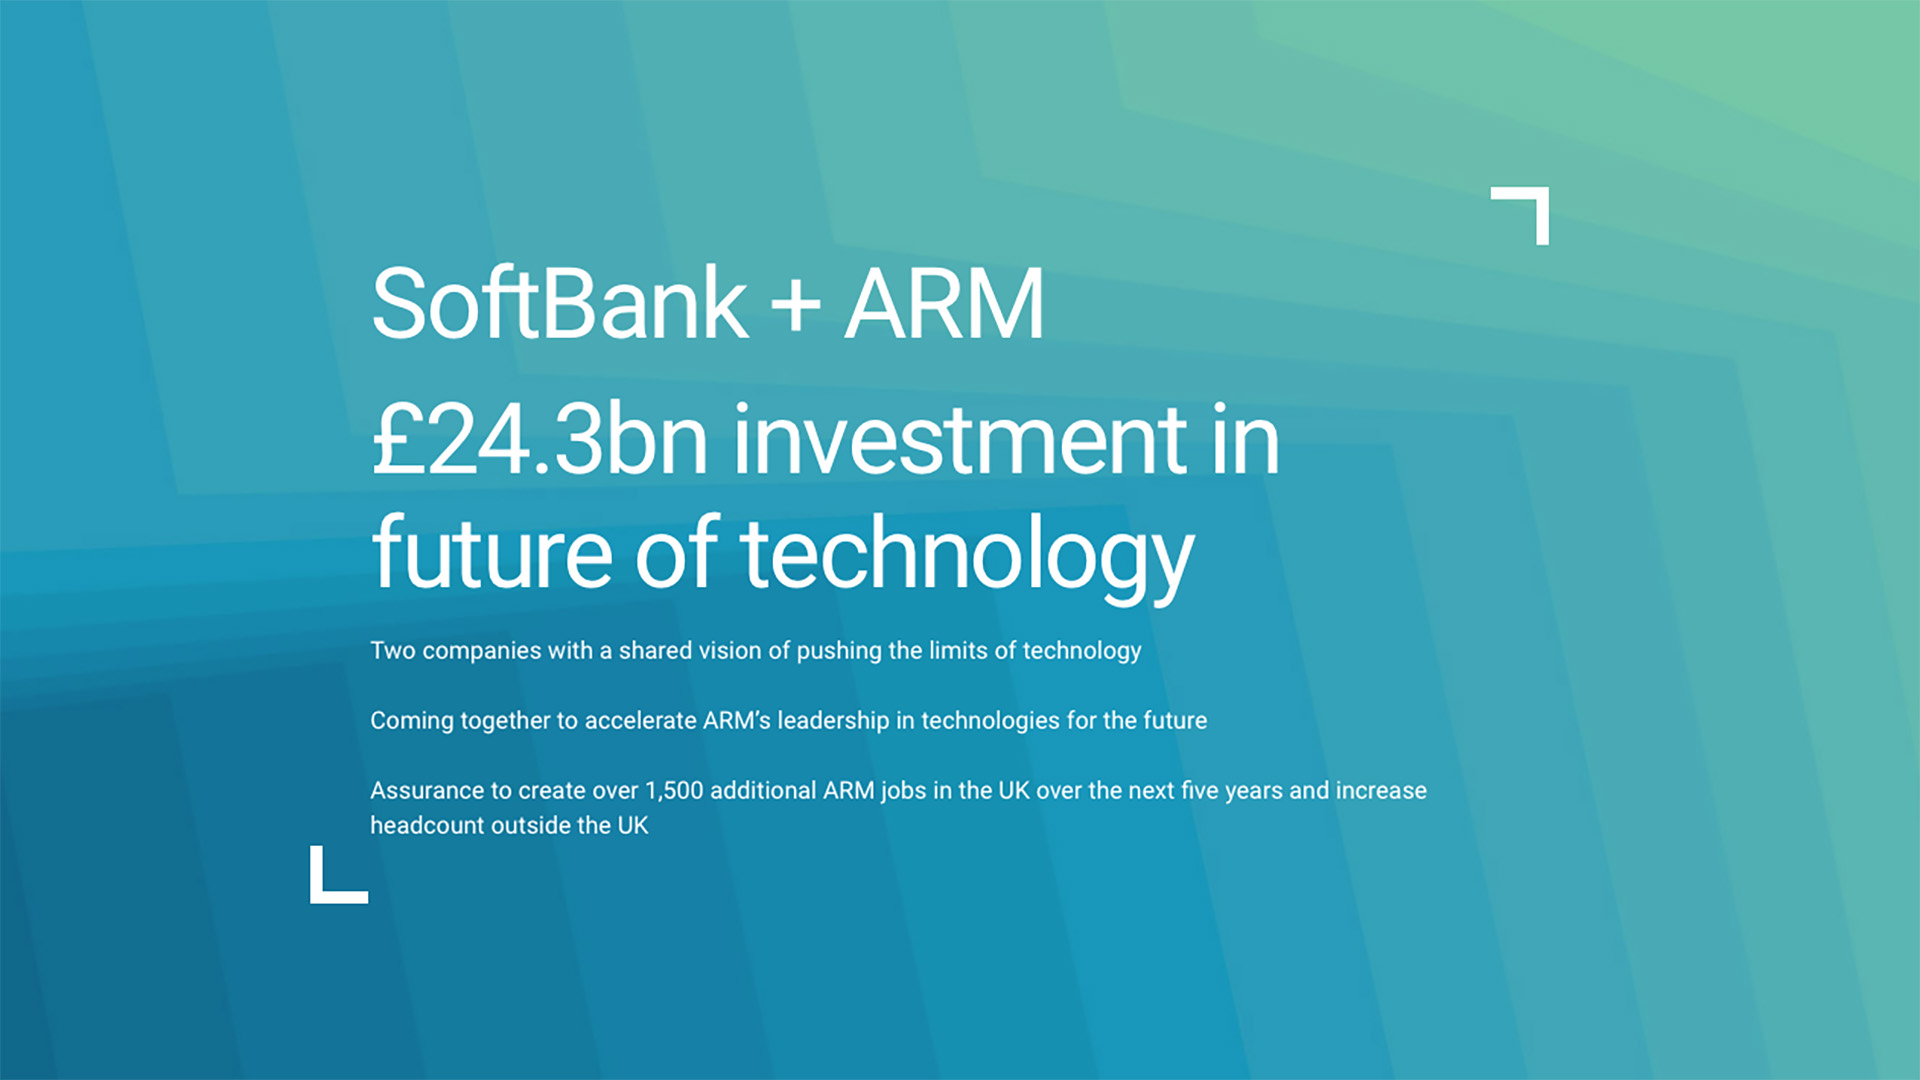 softbank + arm